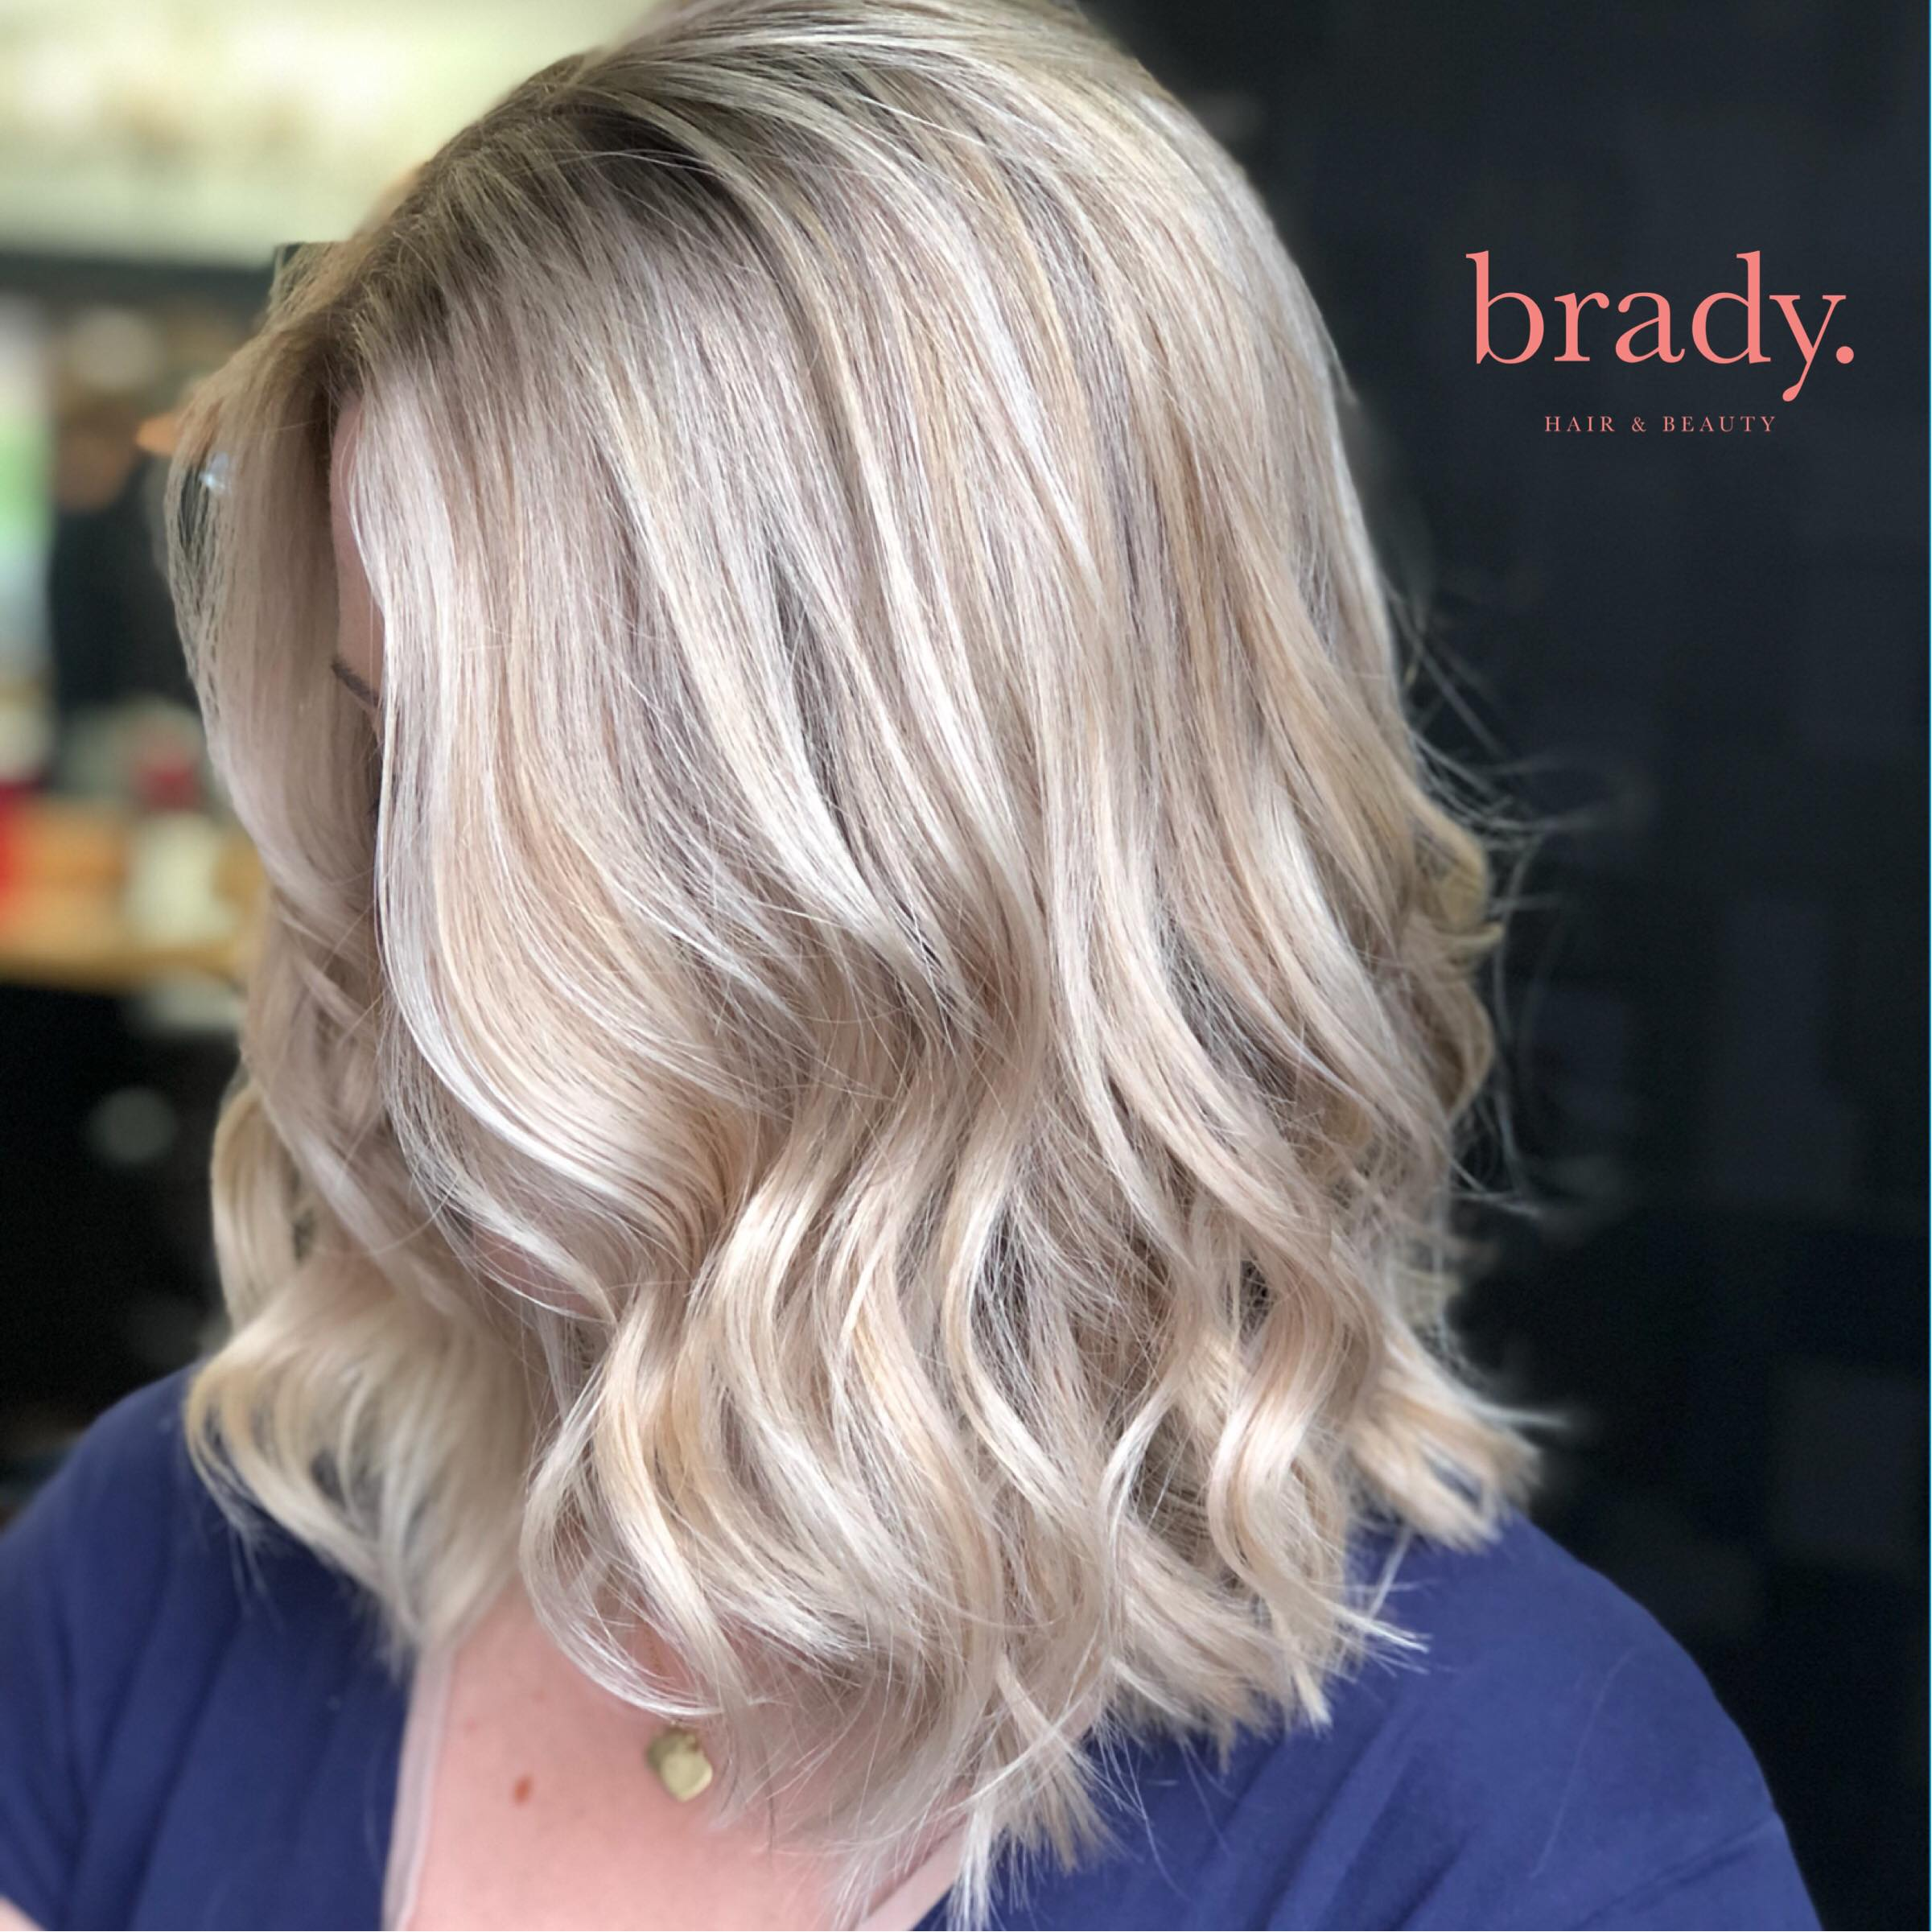 Photo of woman with medium-length, wavy blonde hair styled by Brady. Hair & Beauty, Toowong, Brisbane.